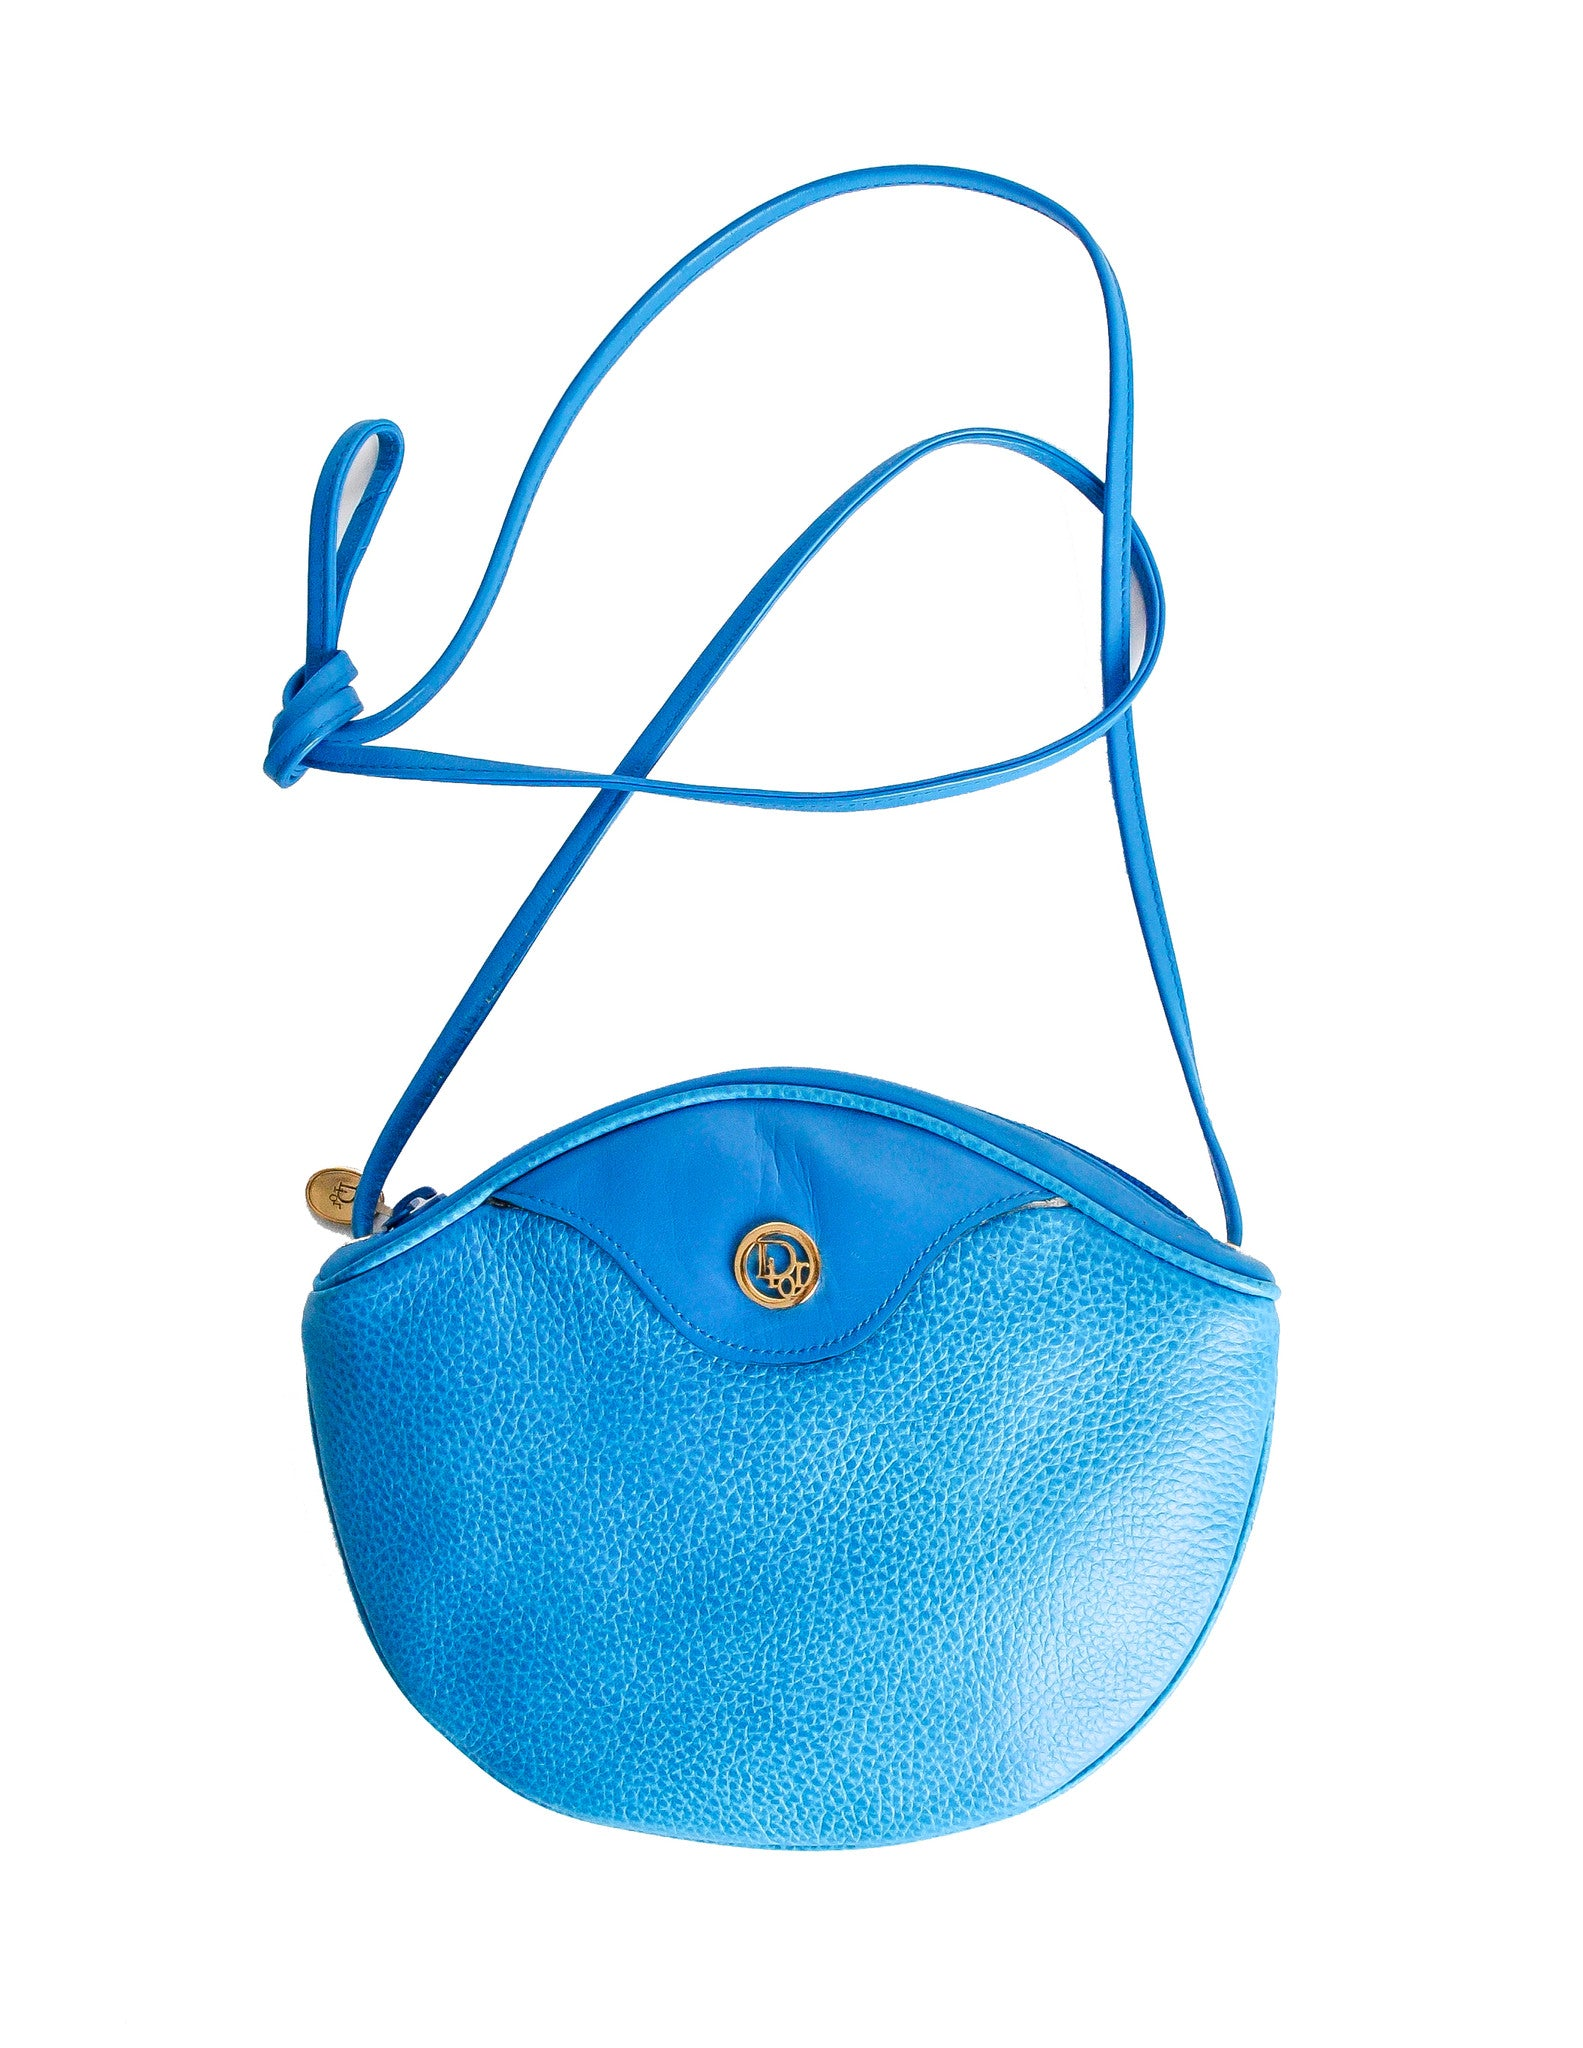 Christian Dior Vintage Blue Leather Crossbody Bag - Amarcord Vintage Fashion  - 1